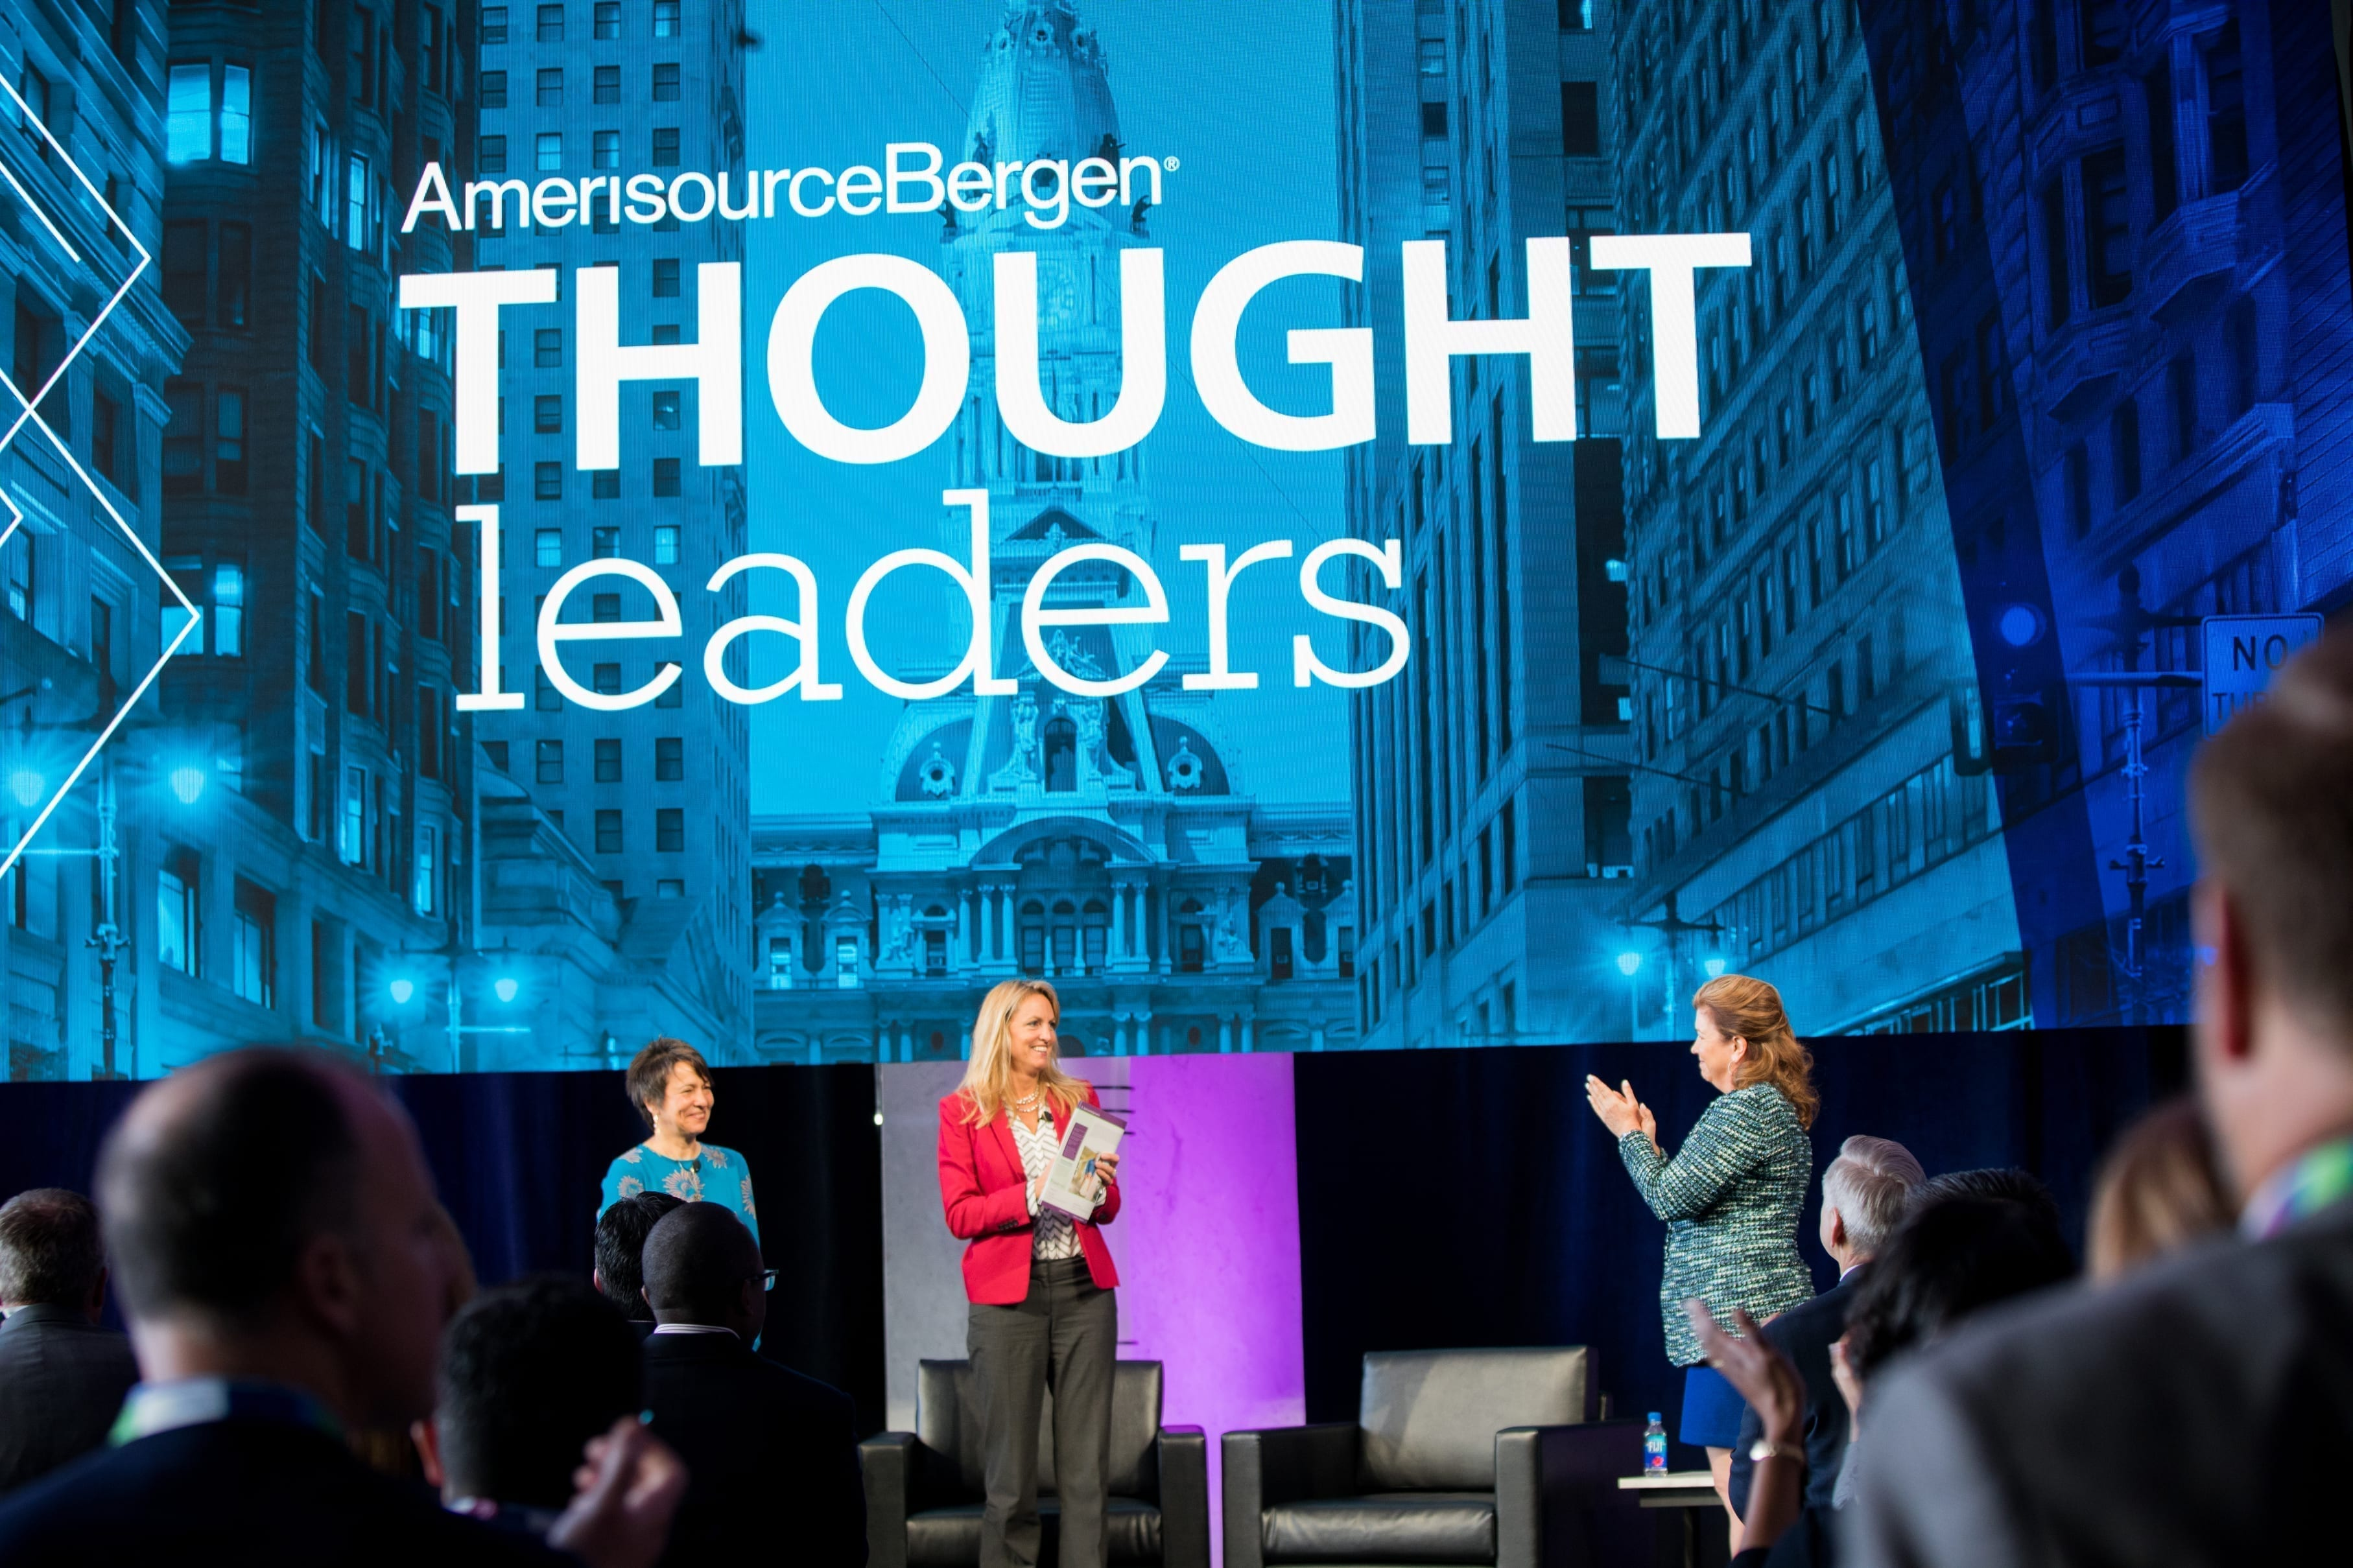 There's more to the story: AmerisourceBergen